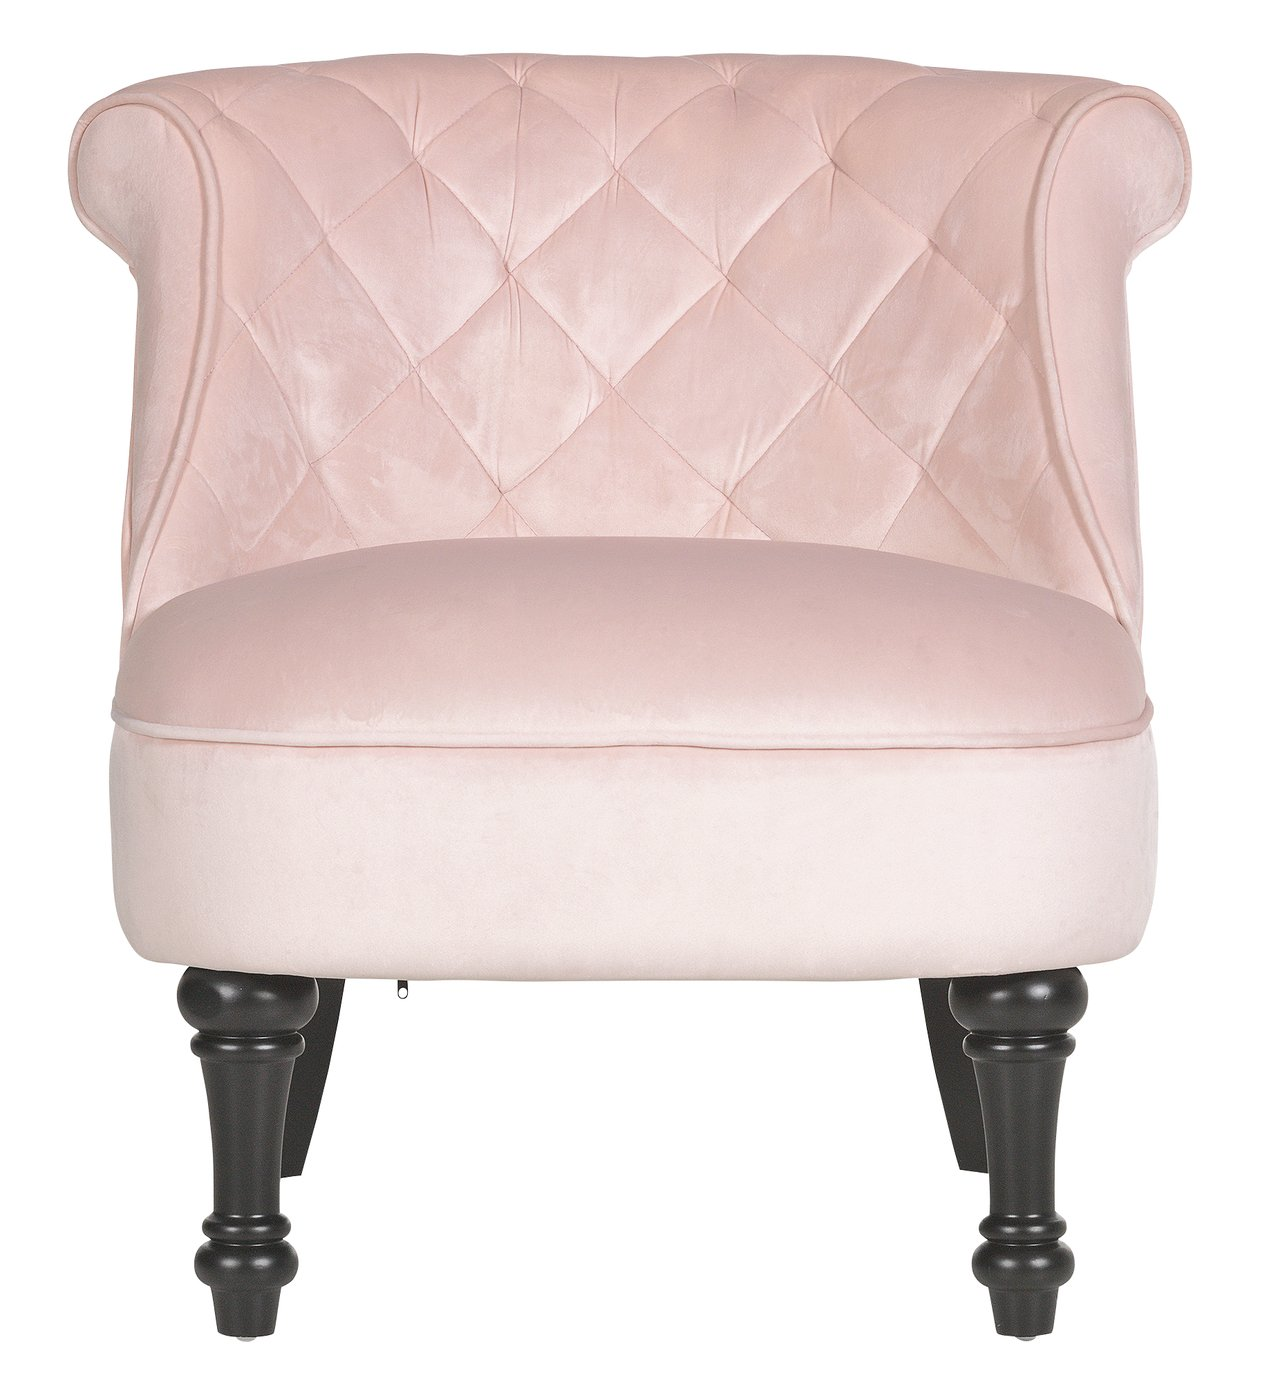 Argos Home Mika Quilted Velvet Accent Chair - Velvet Pink